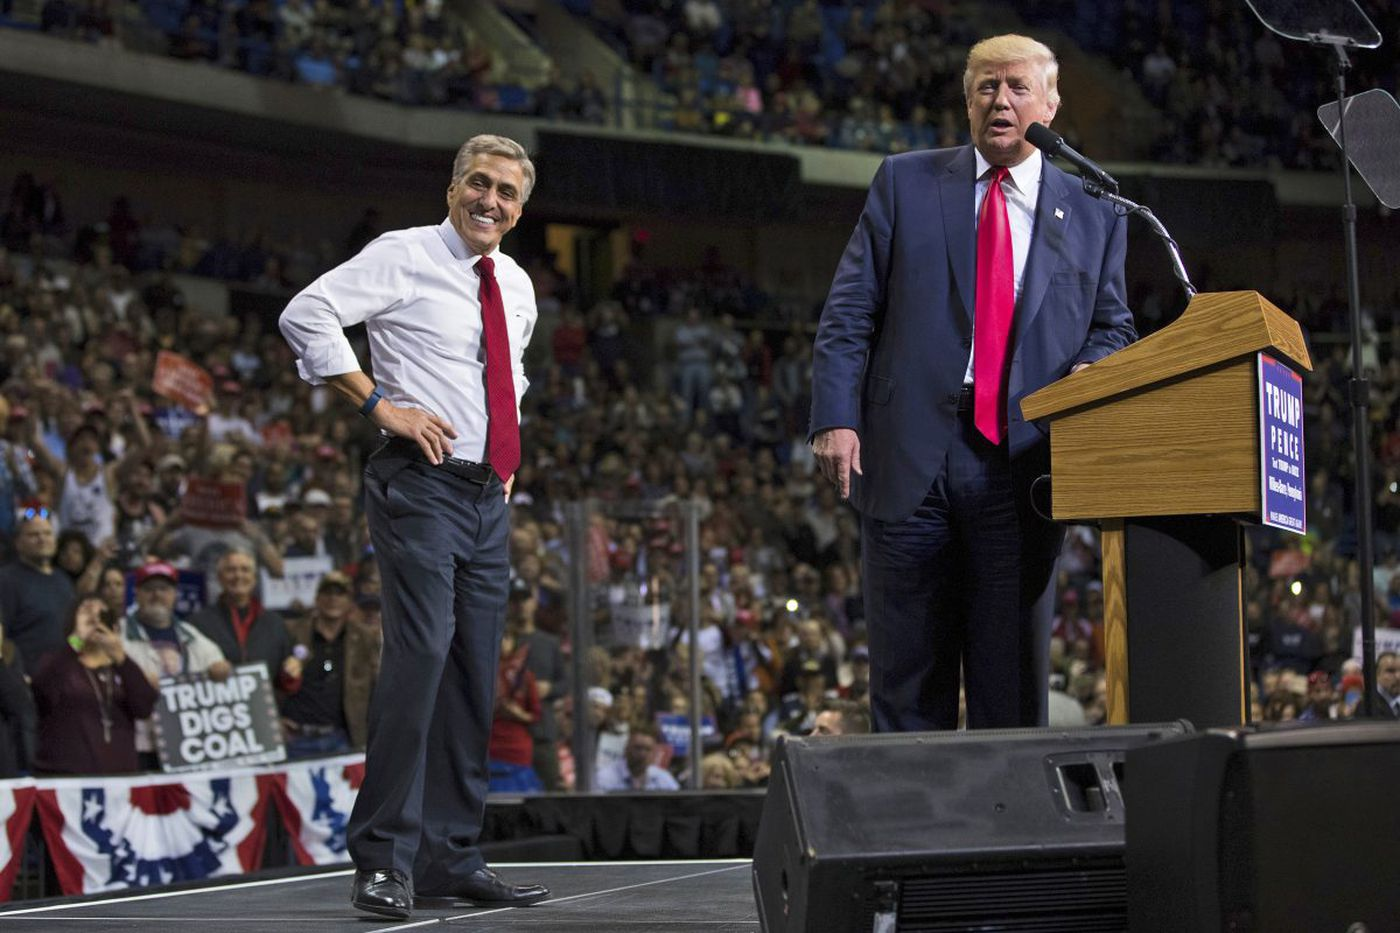 Lou Barletta has Trump ties. But can he raise the money to take on Bob Casey?